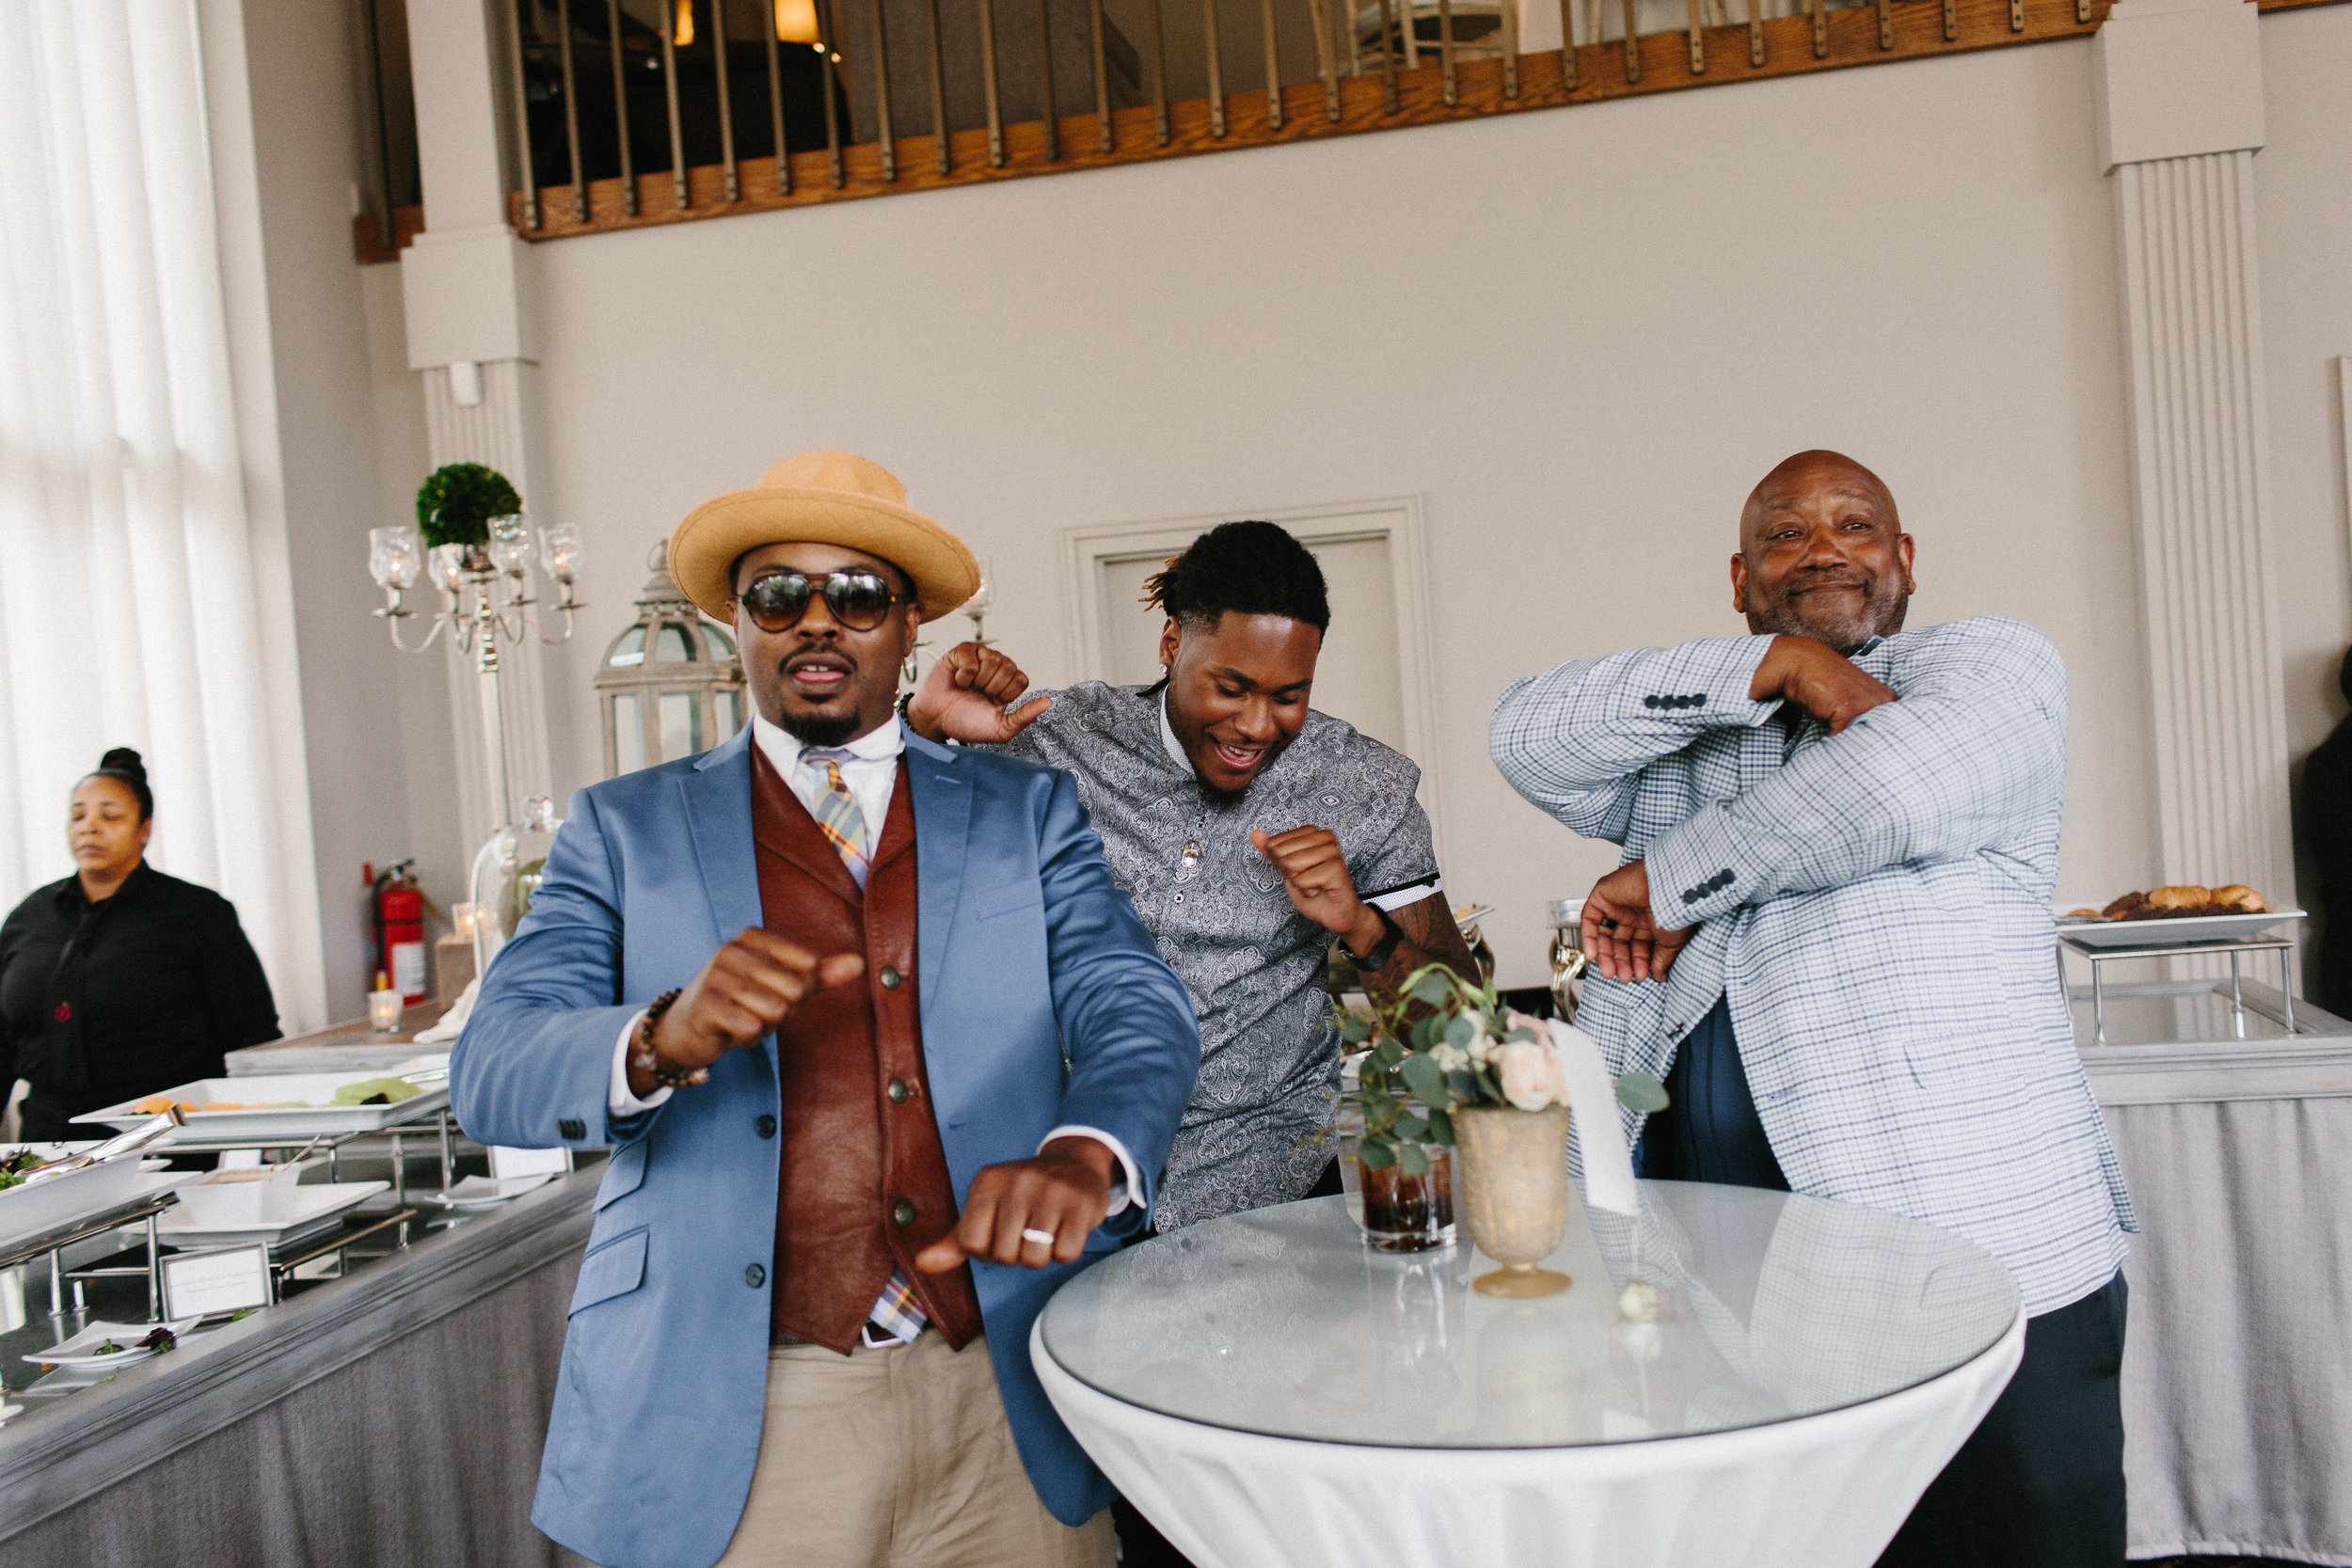 the_atrium_wedding_atlanta_norcross_lifestyle_photographers_lgbtq_1558.jpg